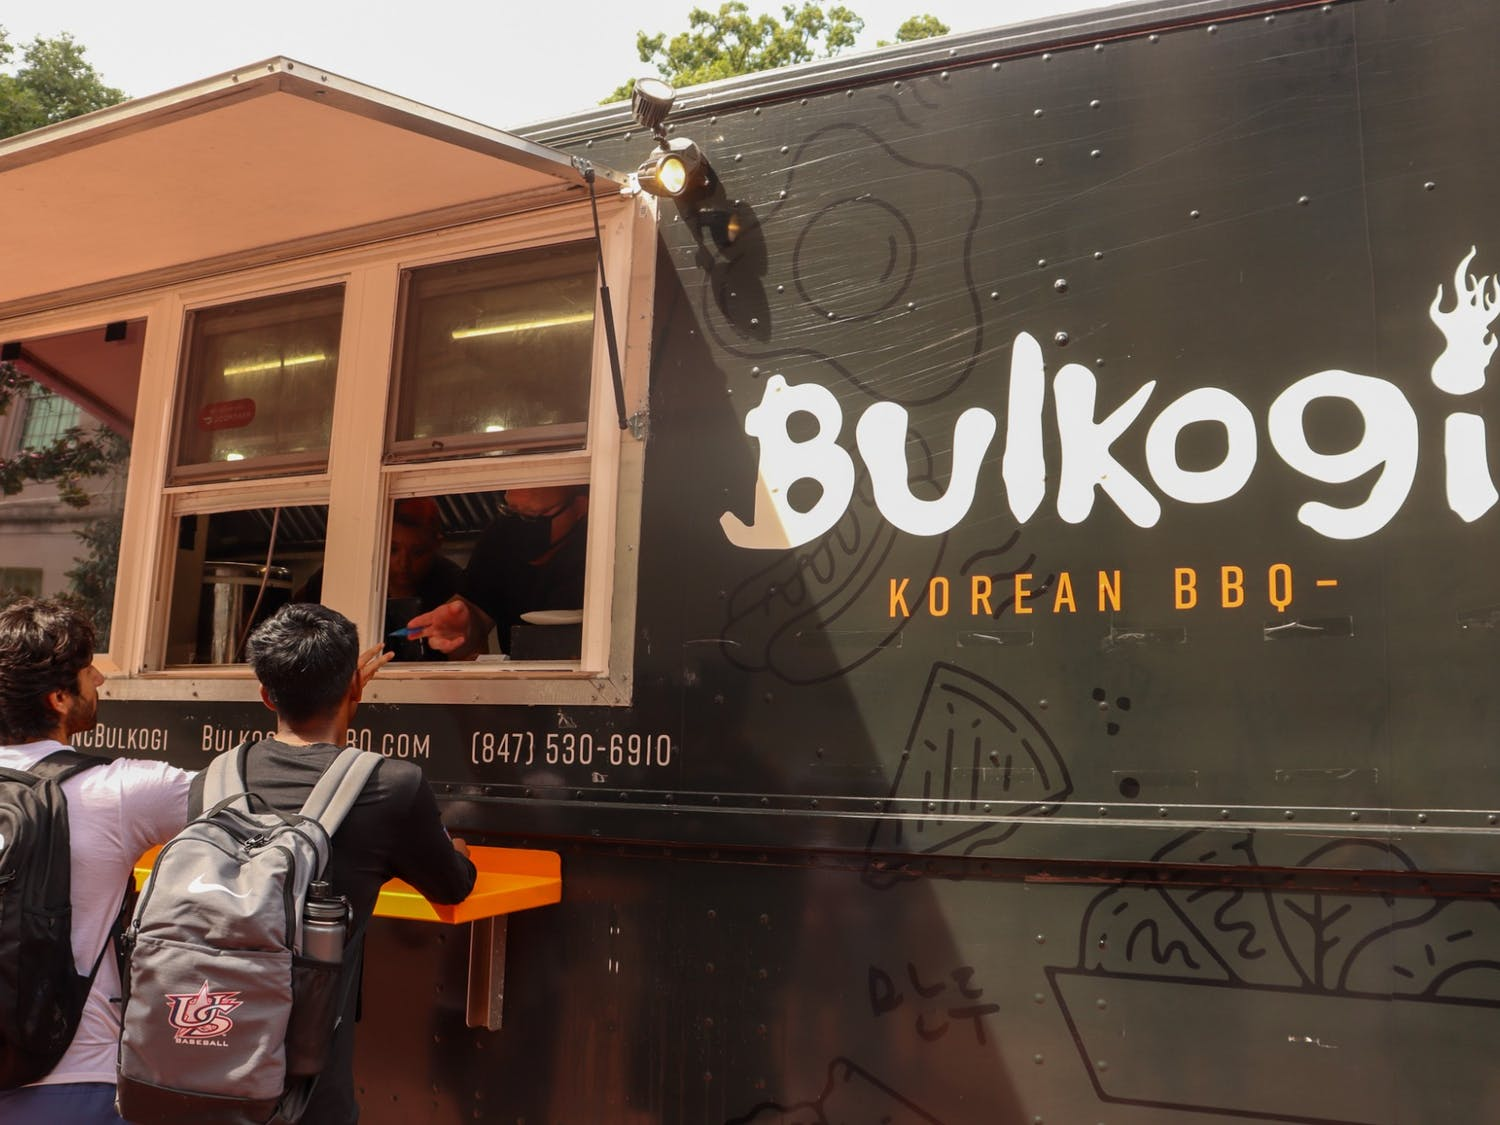 Junior sports administration major TJ Nanugonda and junior computer science major Garv Srivastava exchange conversation with Bulkogi BBQ truck workers while paying for their food with their meal swipes.